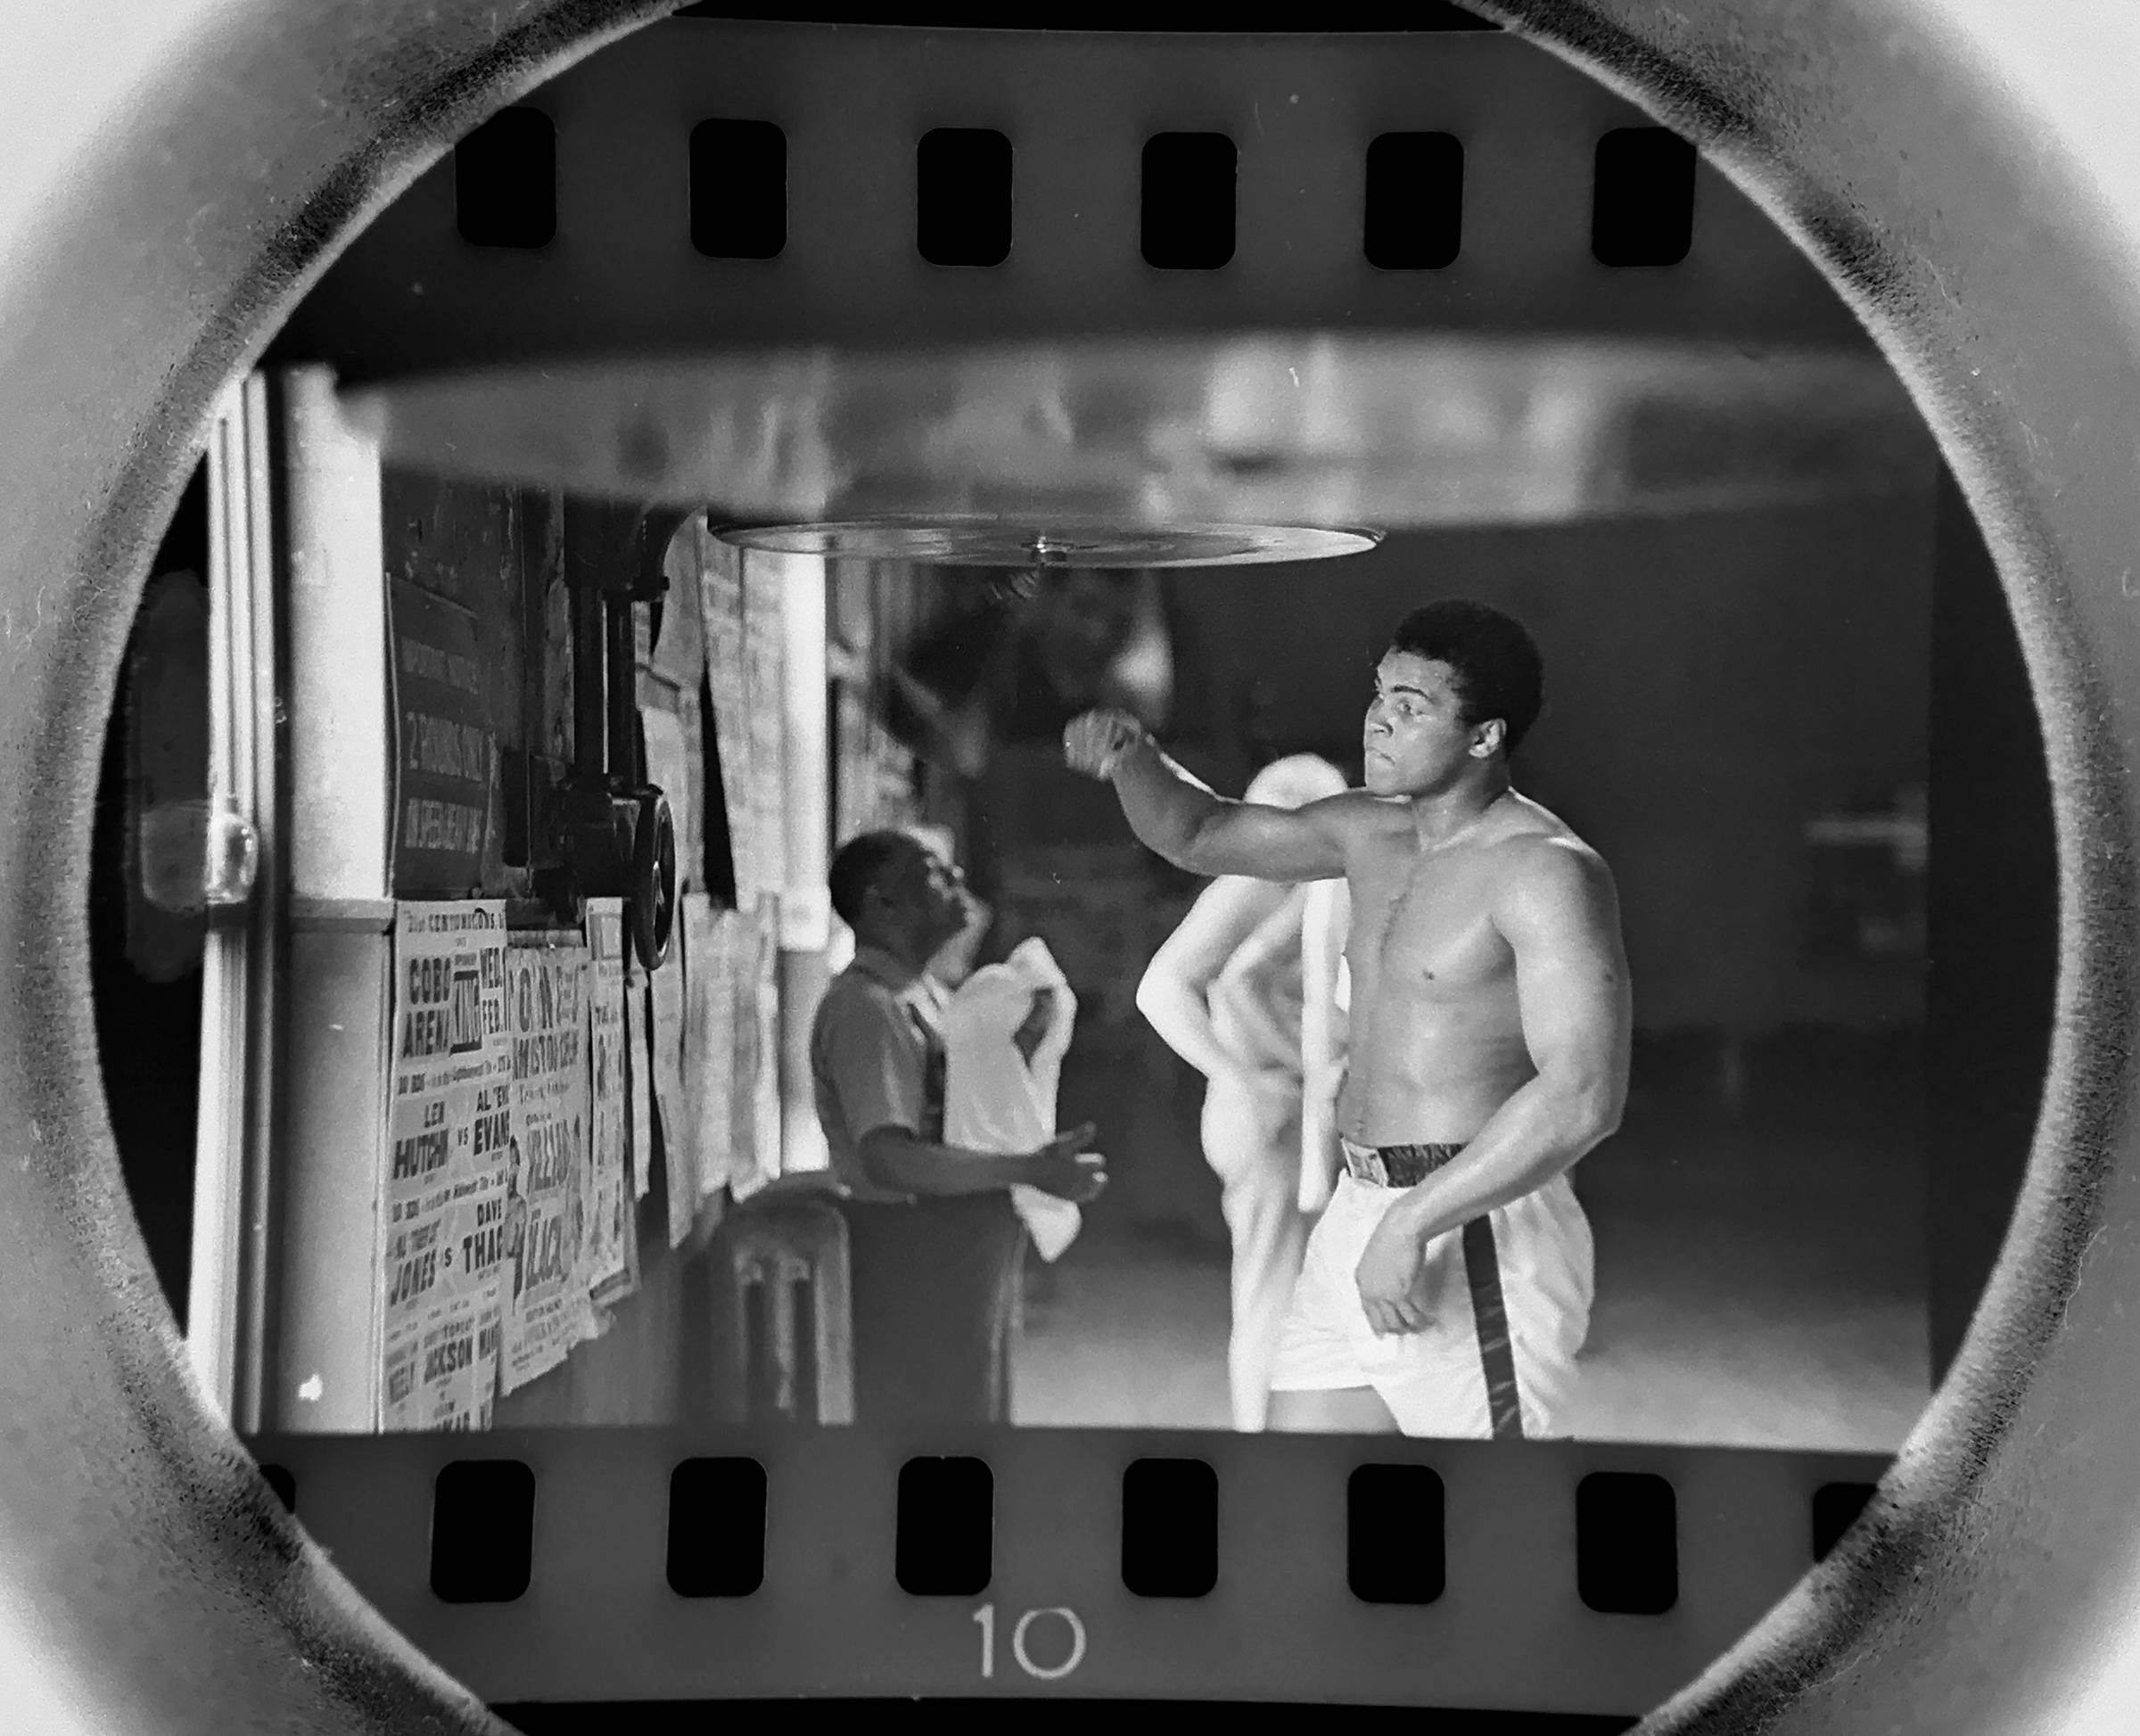 The Daily Herald Archives, Assignment 22,197, Jay Needleman photo: A 29-year-old Muhammad Ali works out at Johnny Coulon's gym on the south side of Chicago in July of 1971.